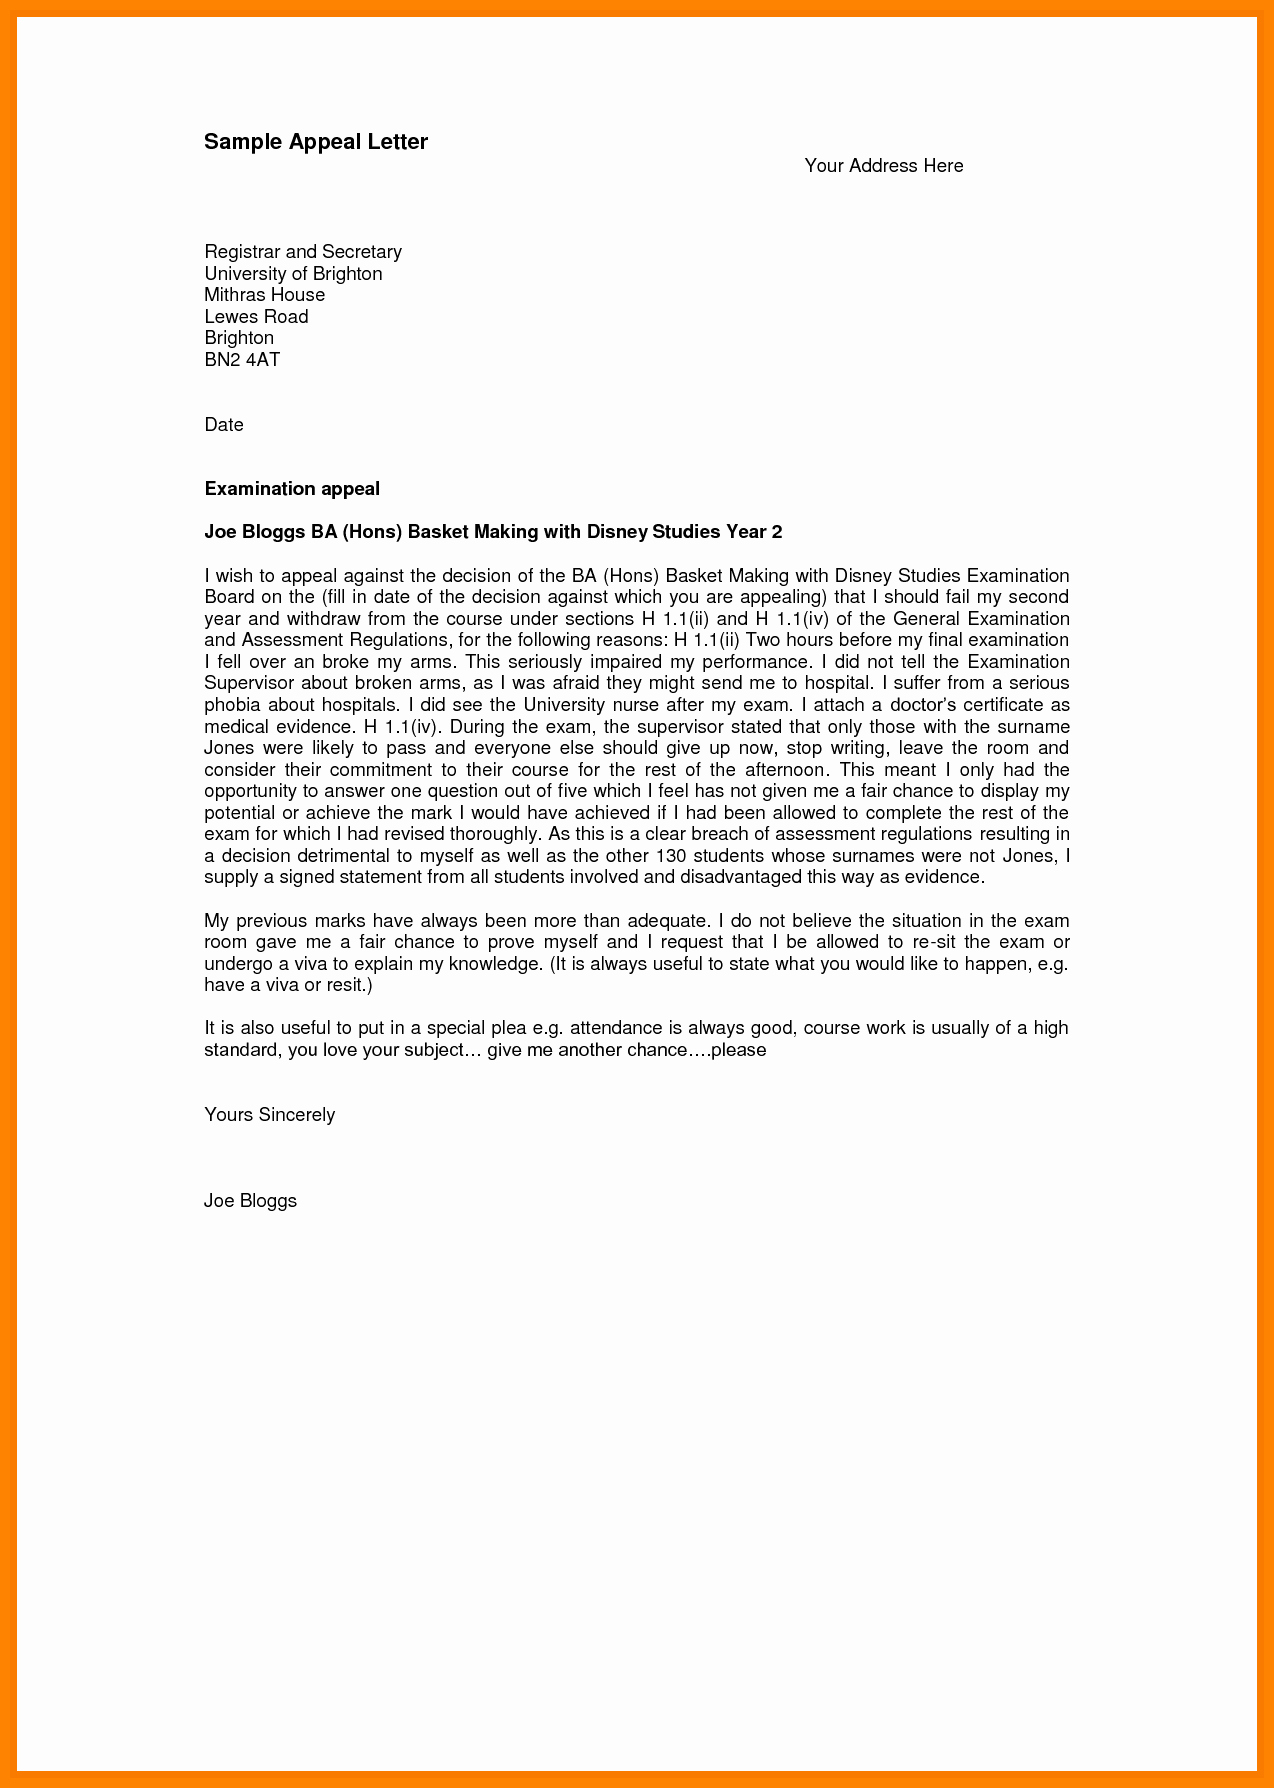 Sap Appeal Letter Luxury 7 Sap Appeal Letter Example